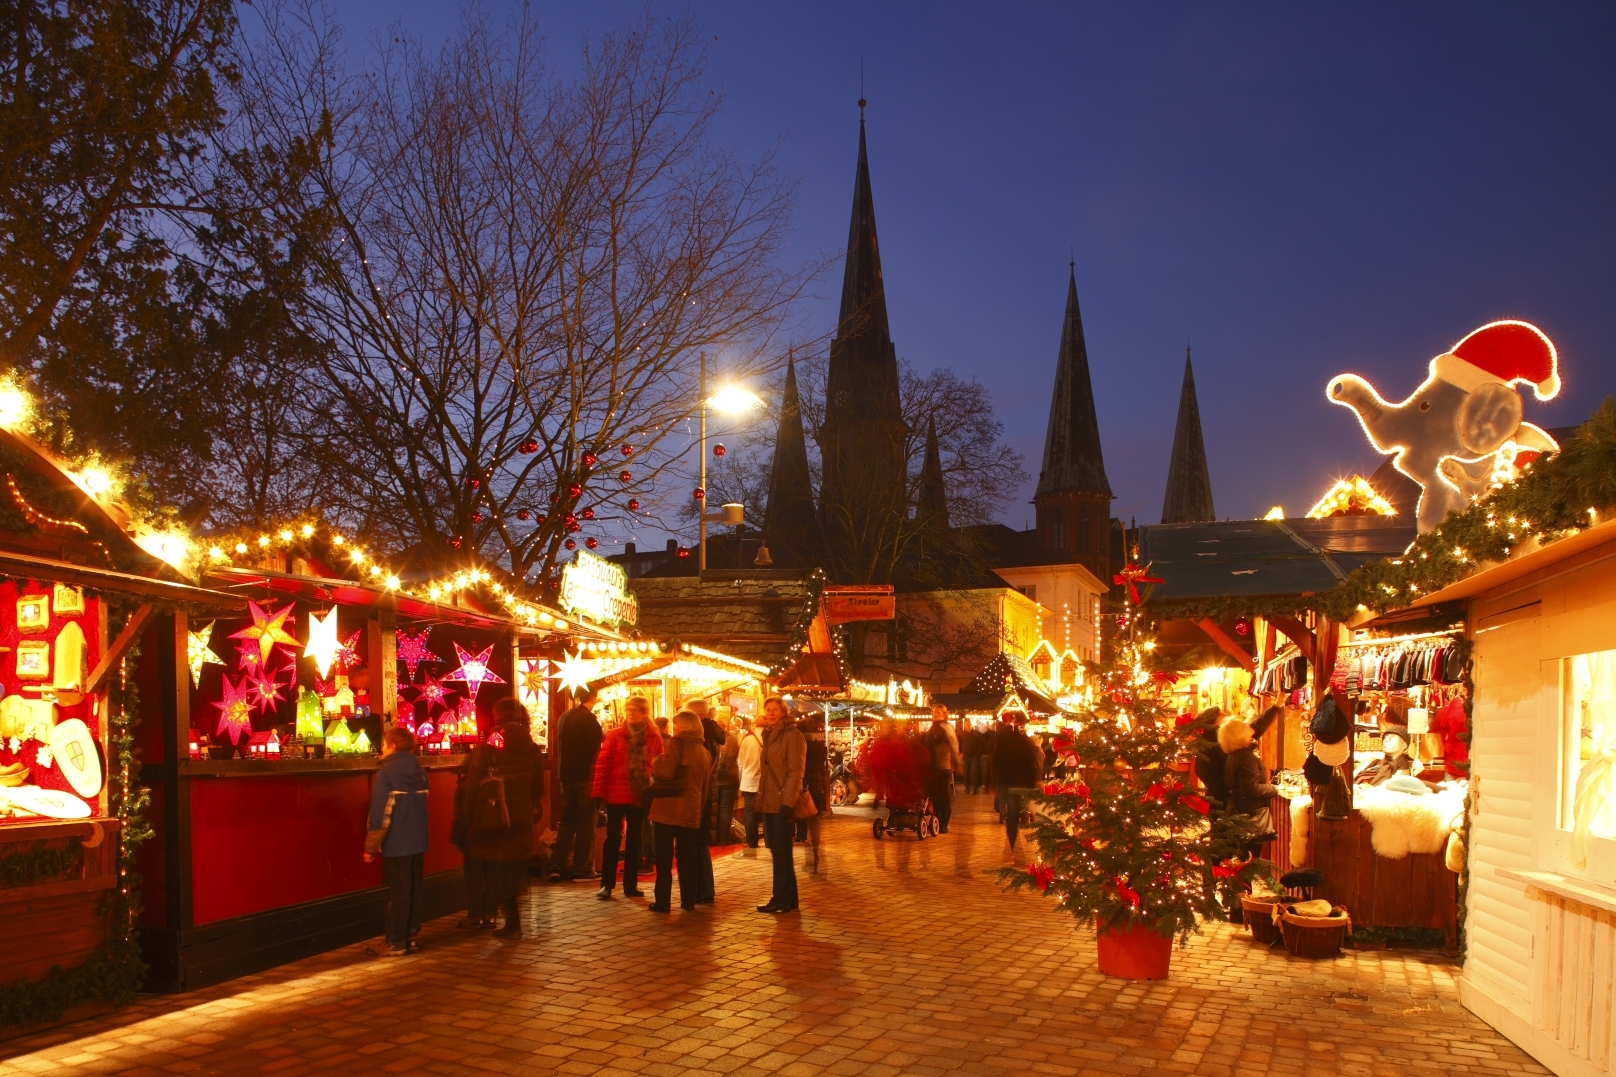 Kerstmarkt In Oldenburg Sfeervol Shoppen En Smullen